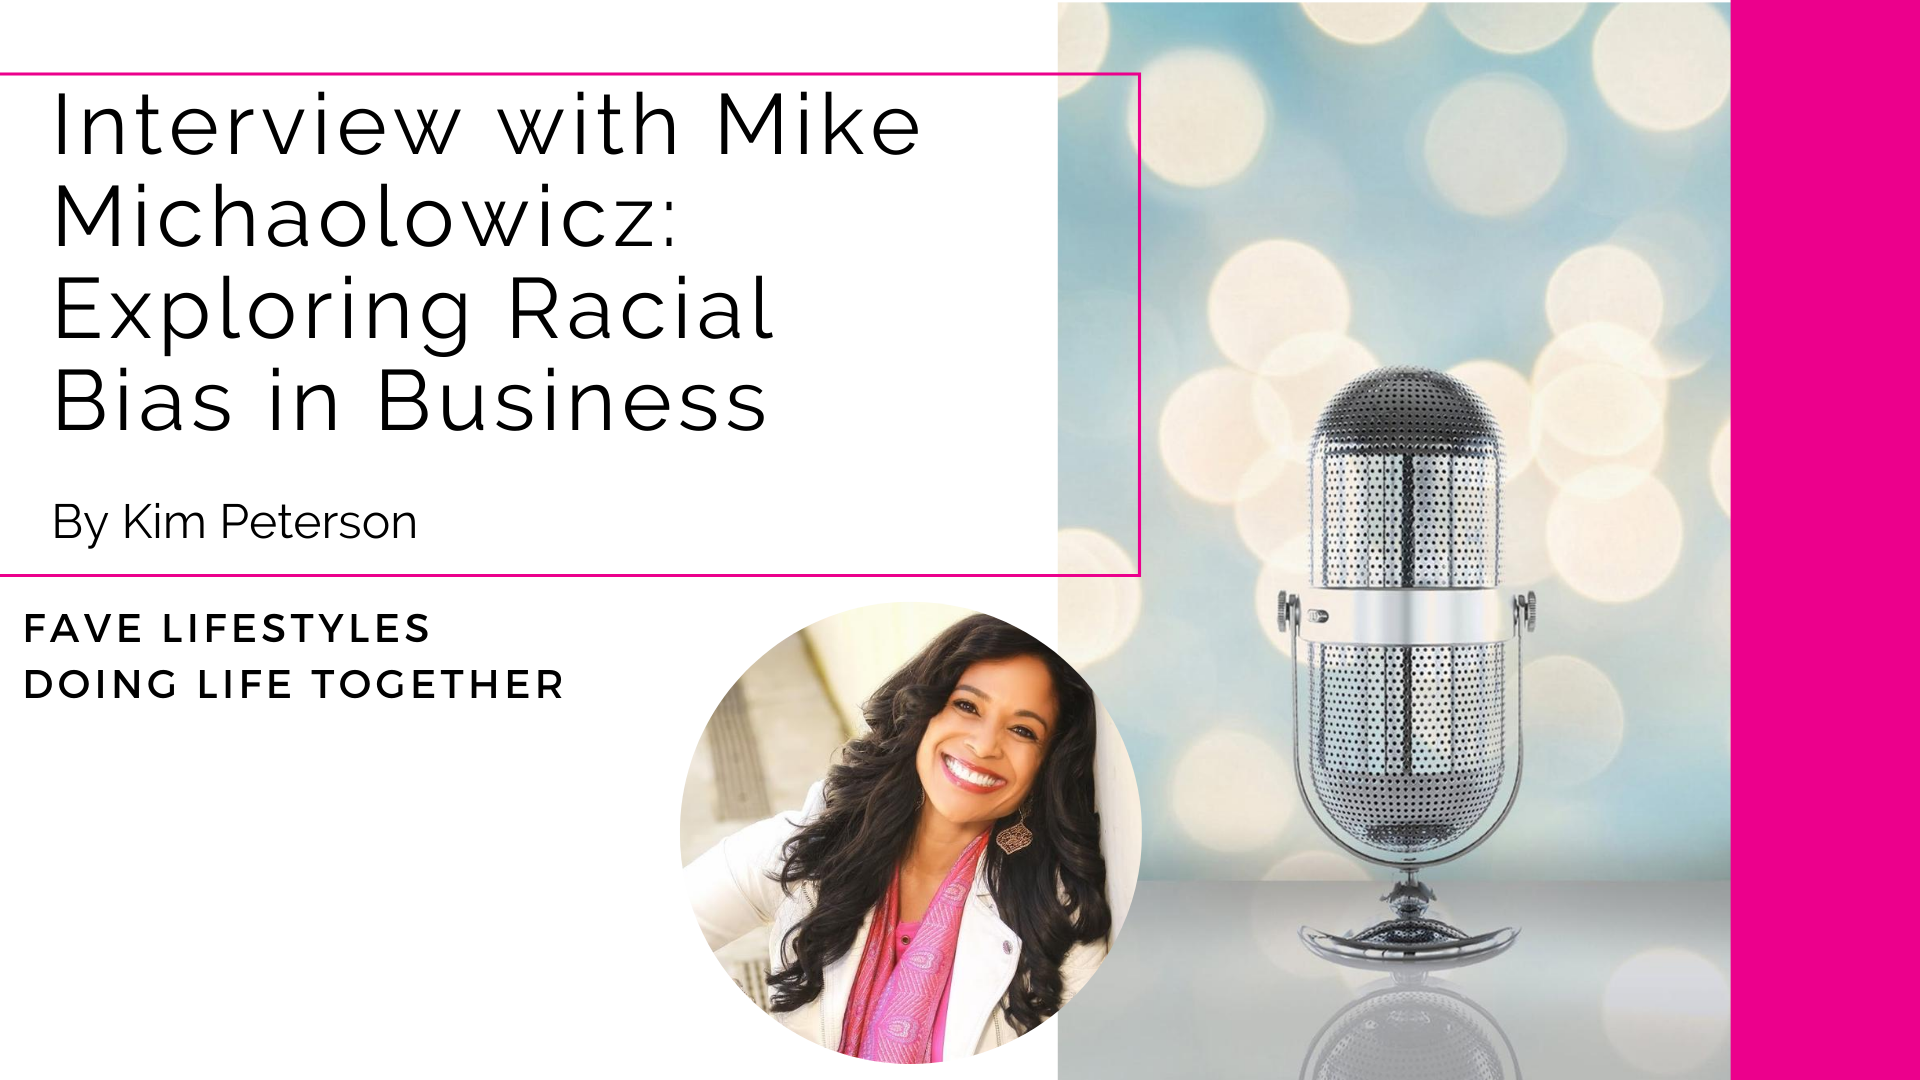 Interview with Mike Michalowicz: Exploring Racial Bias in Business